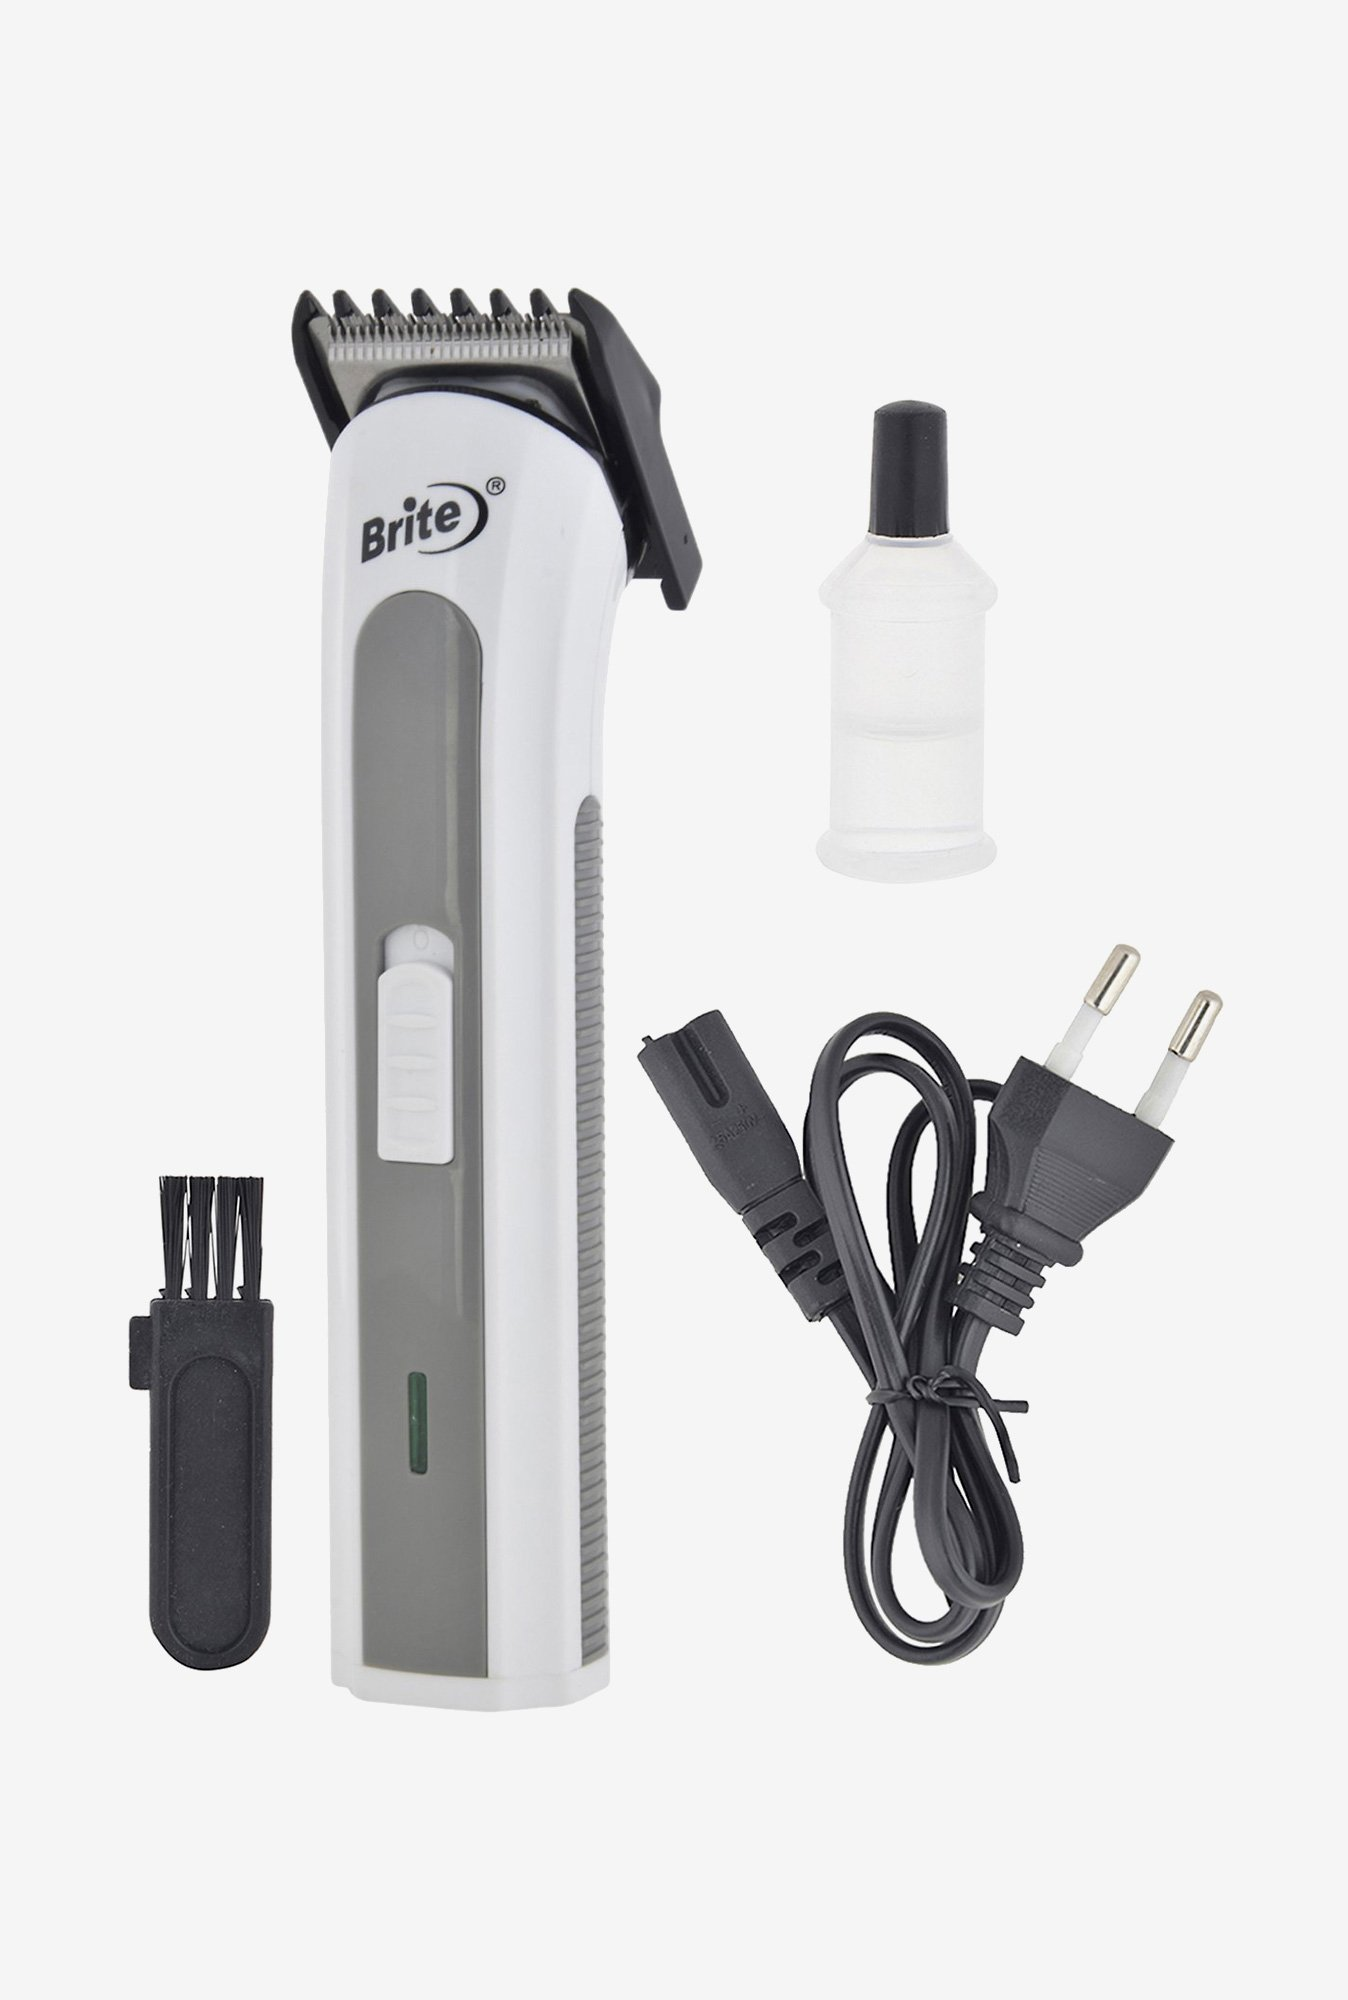 Brite BHT-502 Trimmer for Unisex (White & Grey)